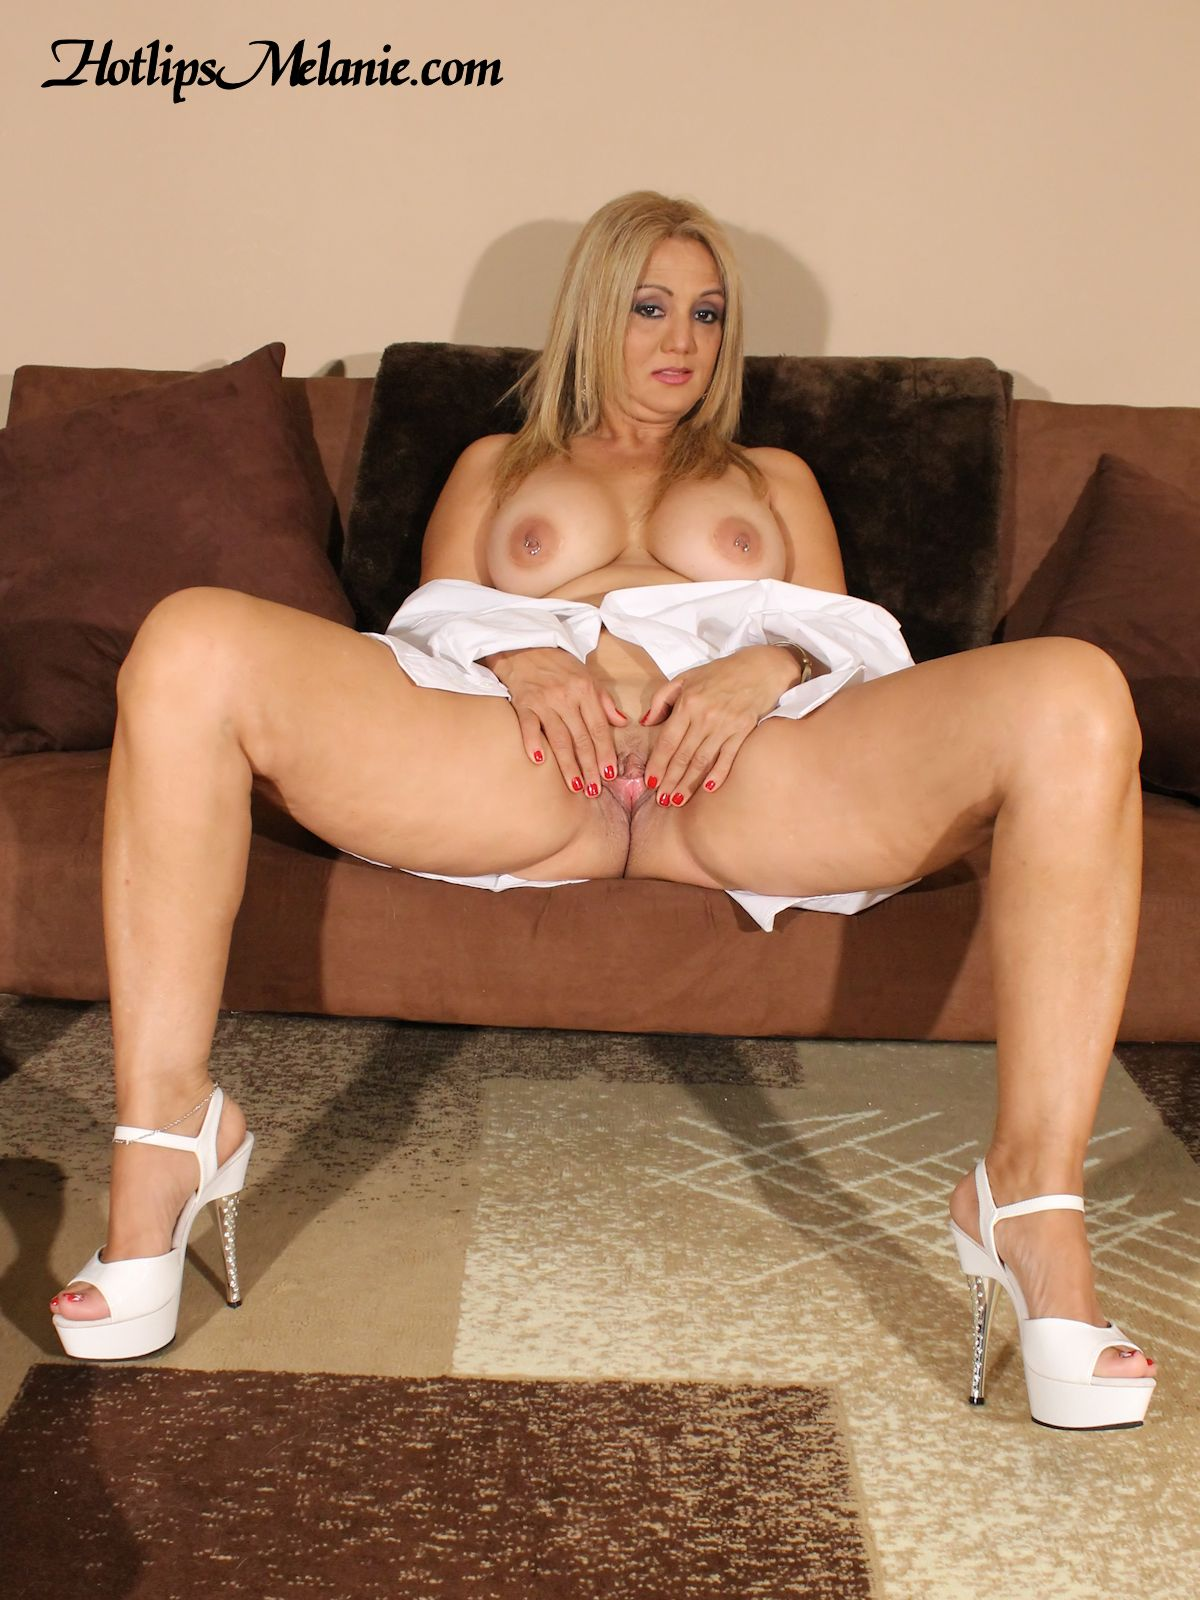 Hotlips Melanie spreads her high heeled, thick legs, and pussy lips.